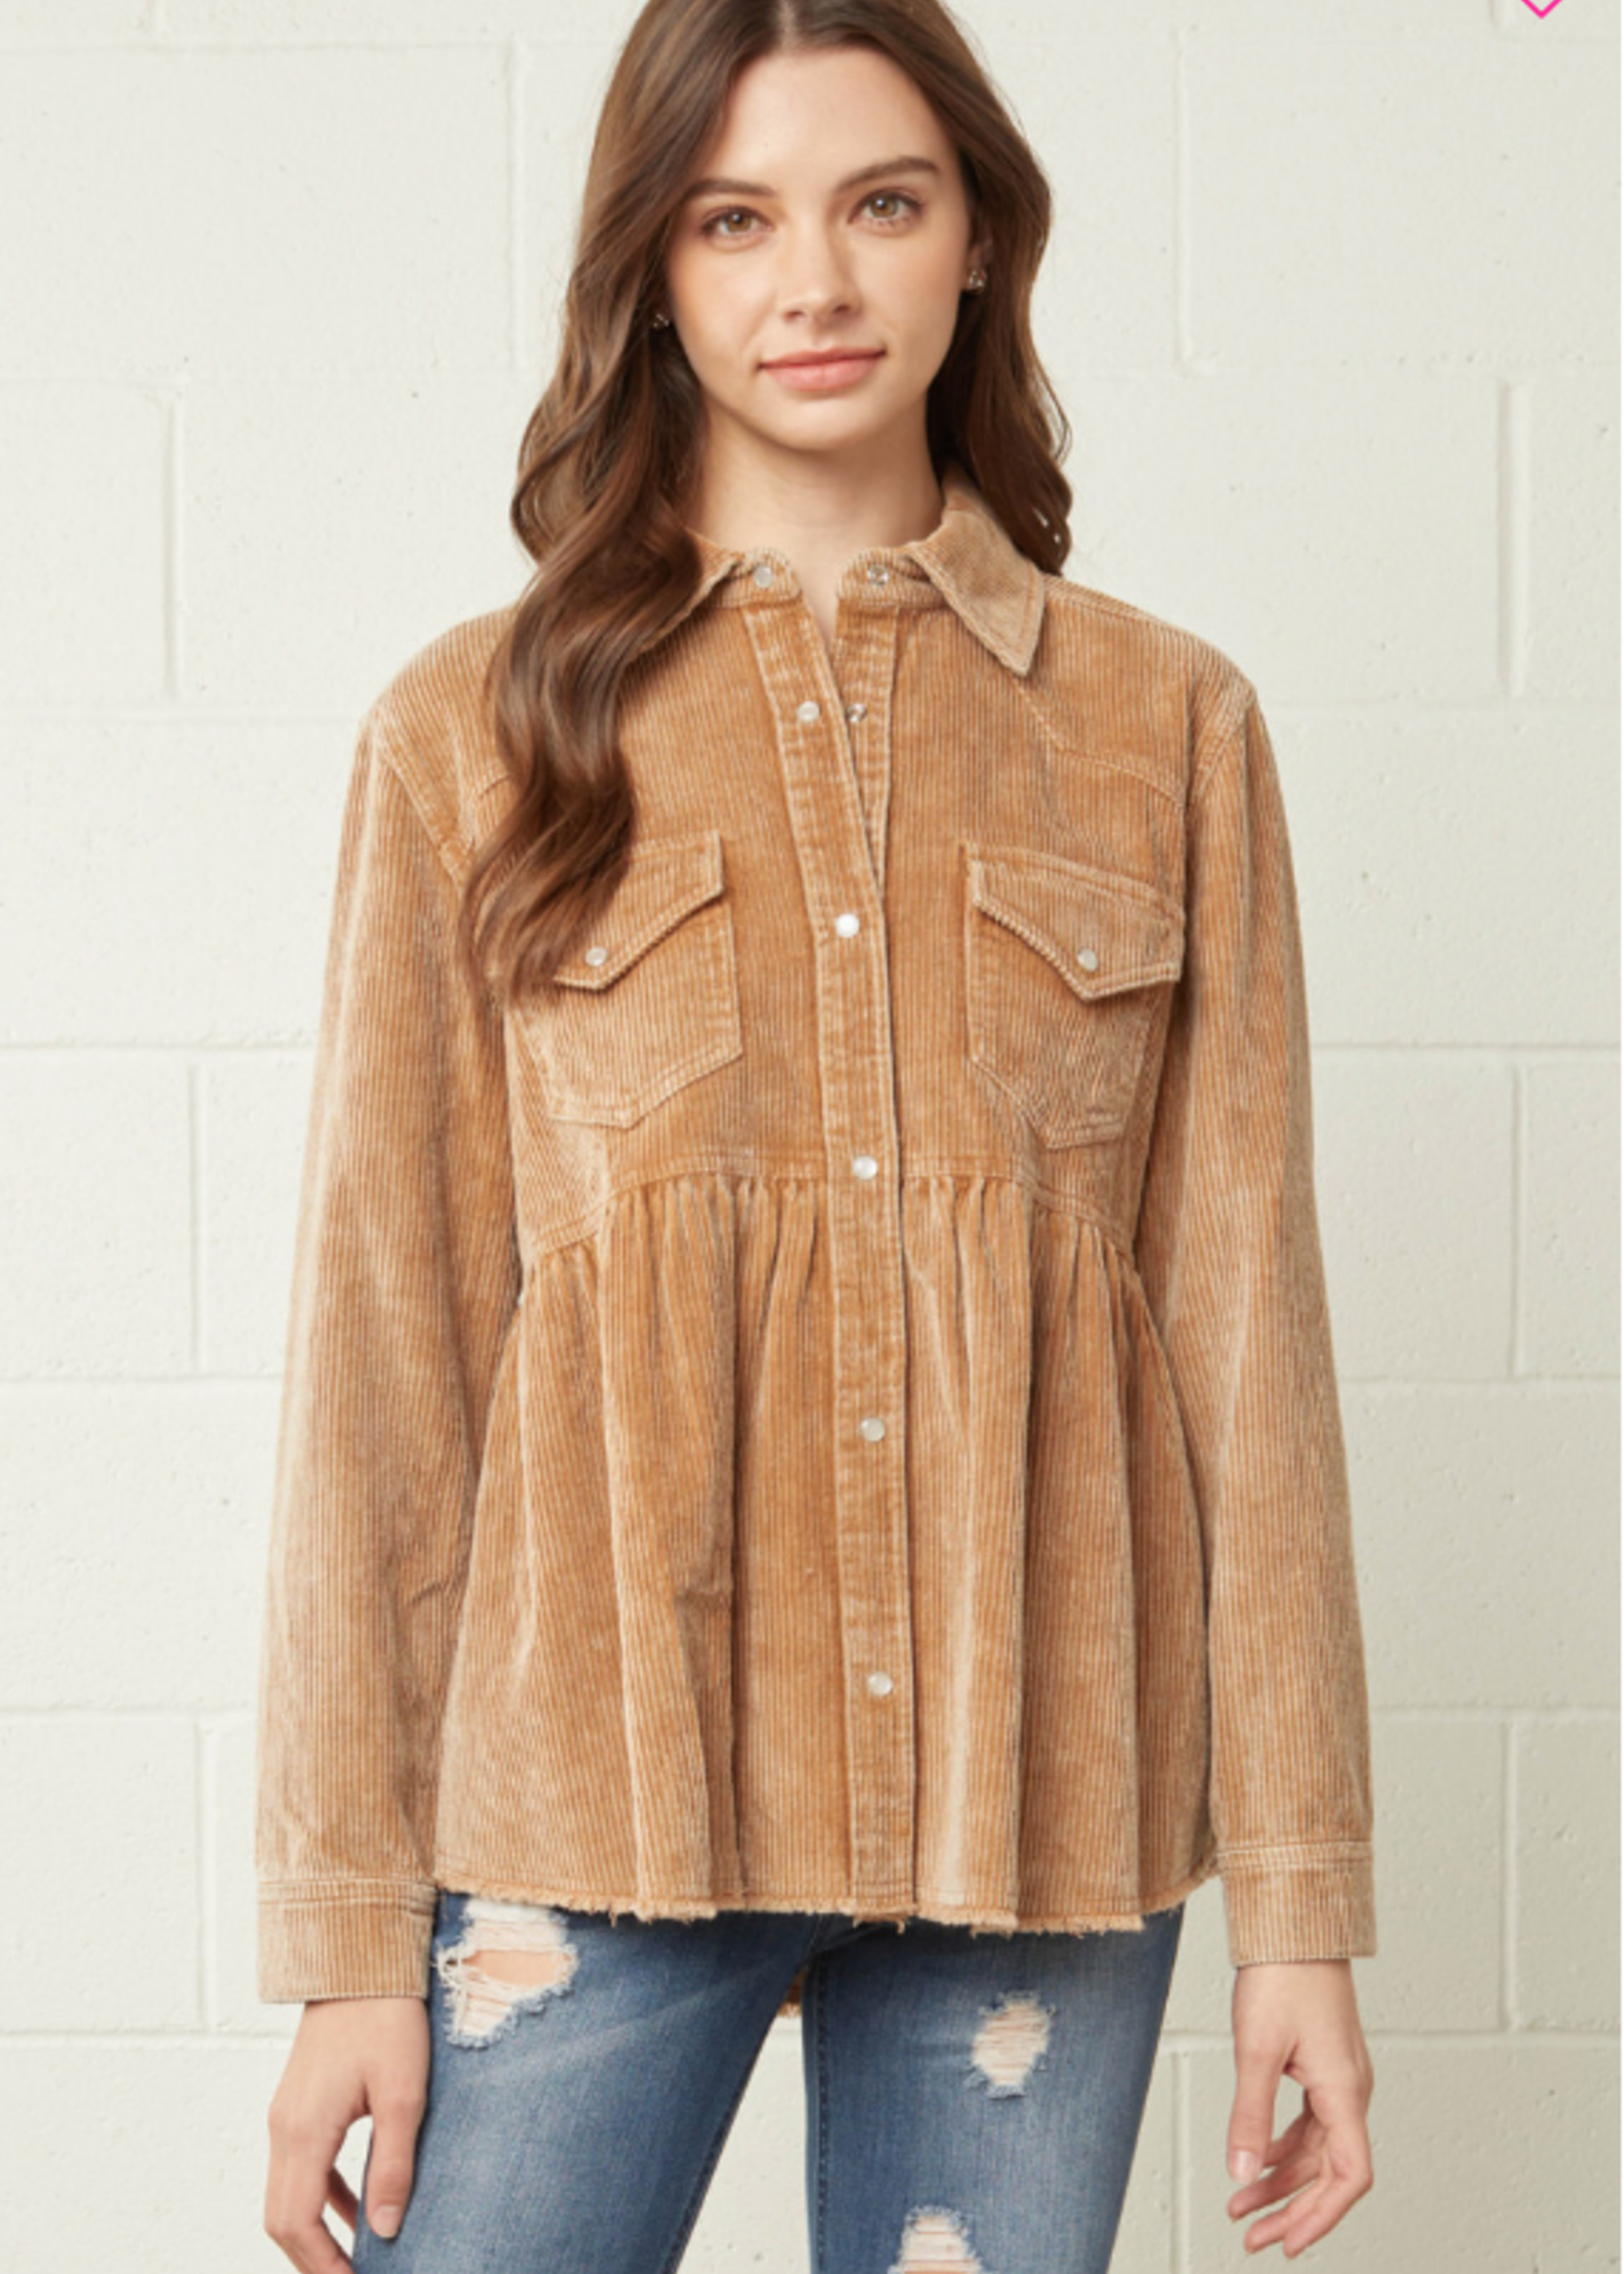 Signs of Fall Corduroy Shacket (4 Colors)